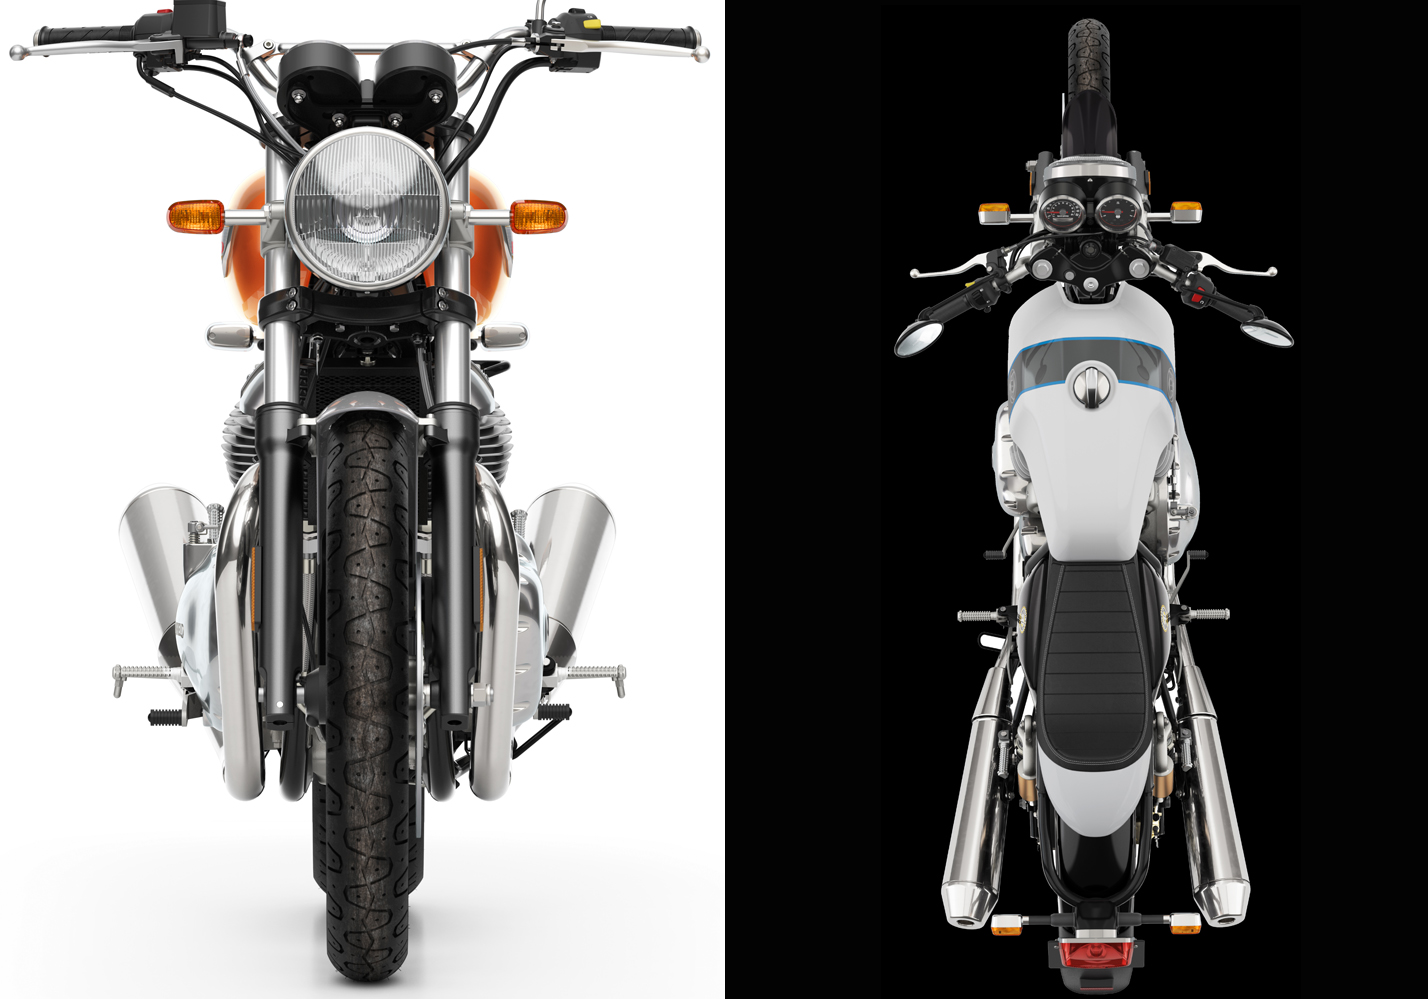 Two motorcycles side by side, one black background, one white.